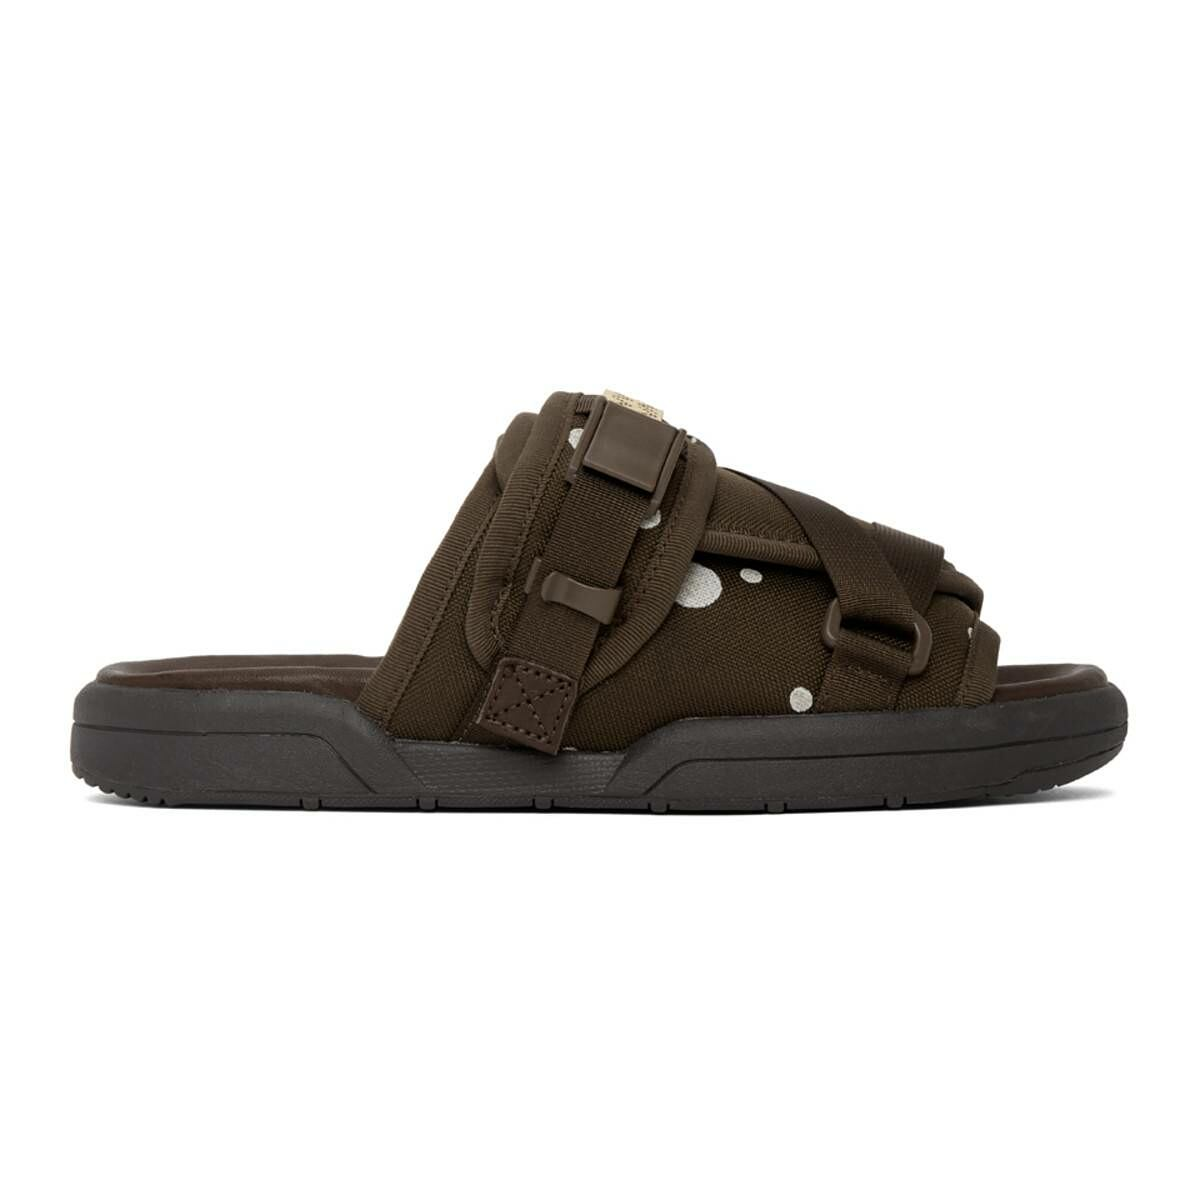 Visvim Brown Christo Sandals Ssense USA MEN Men SHOES Mens SANDALS